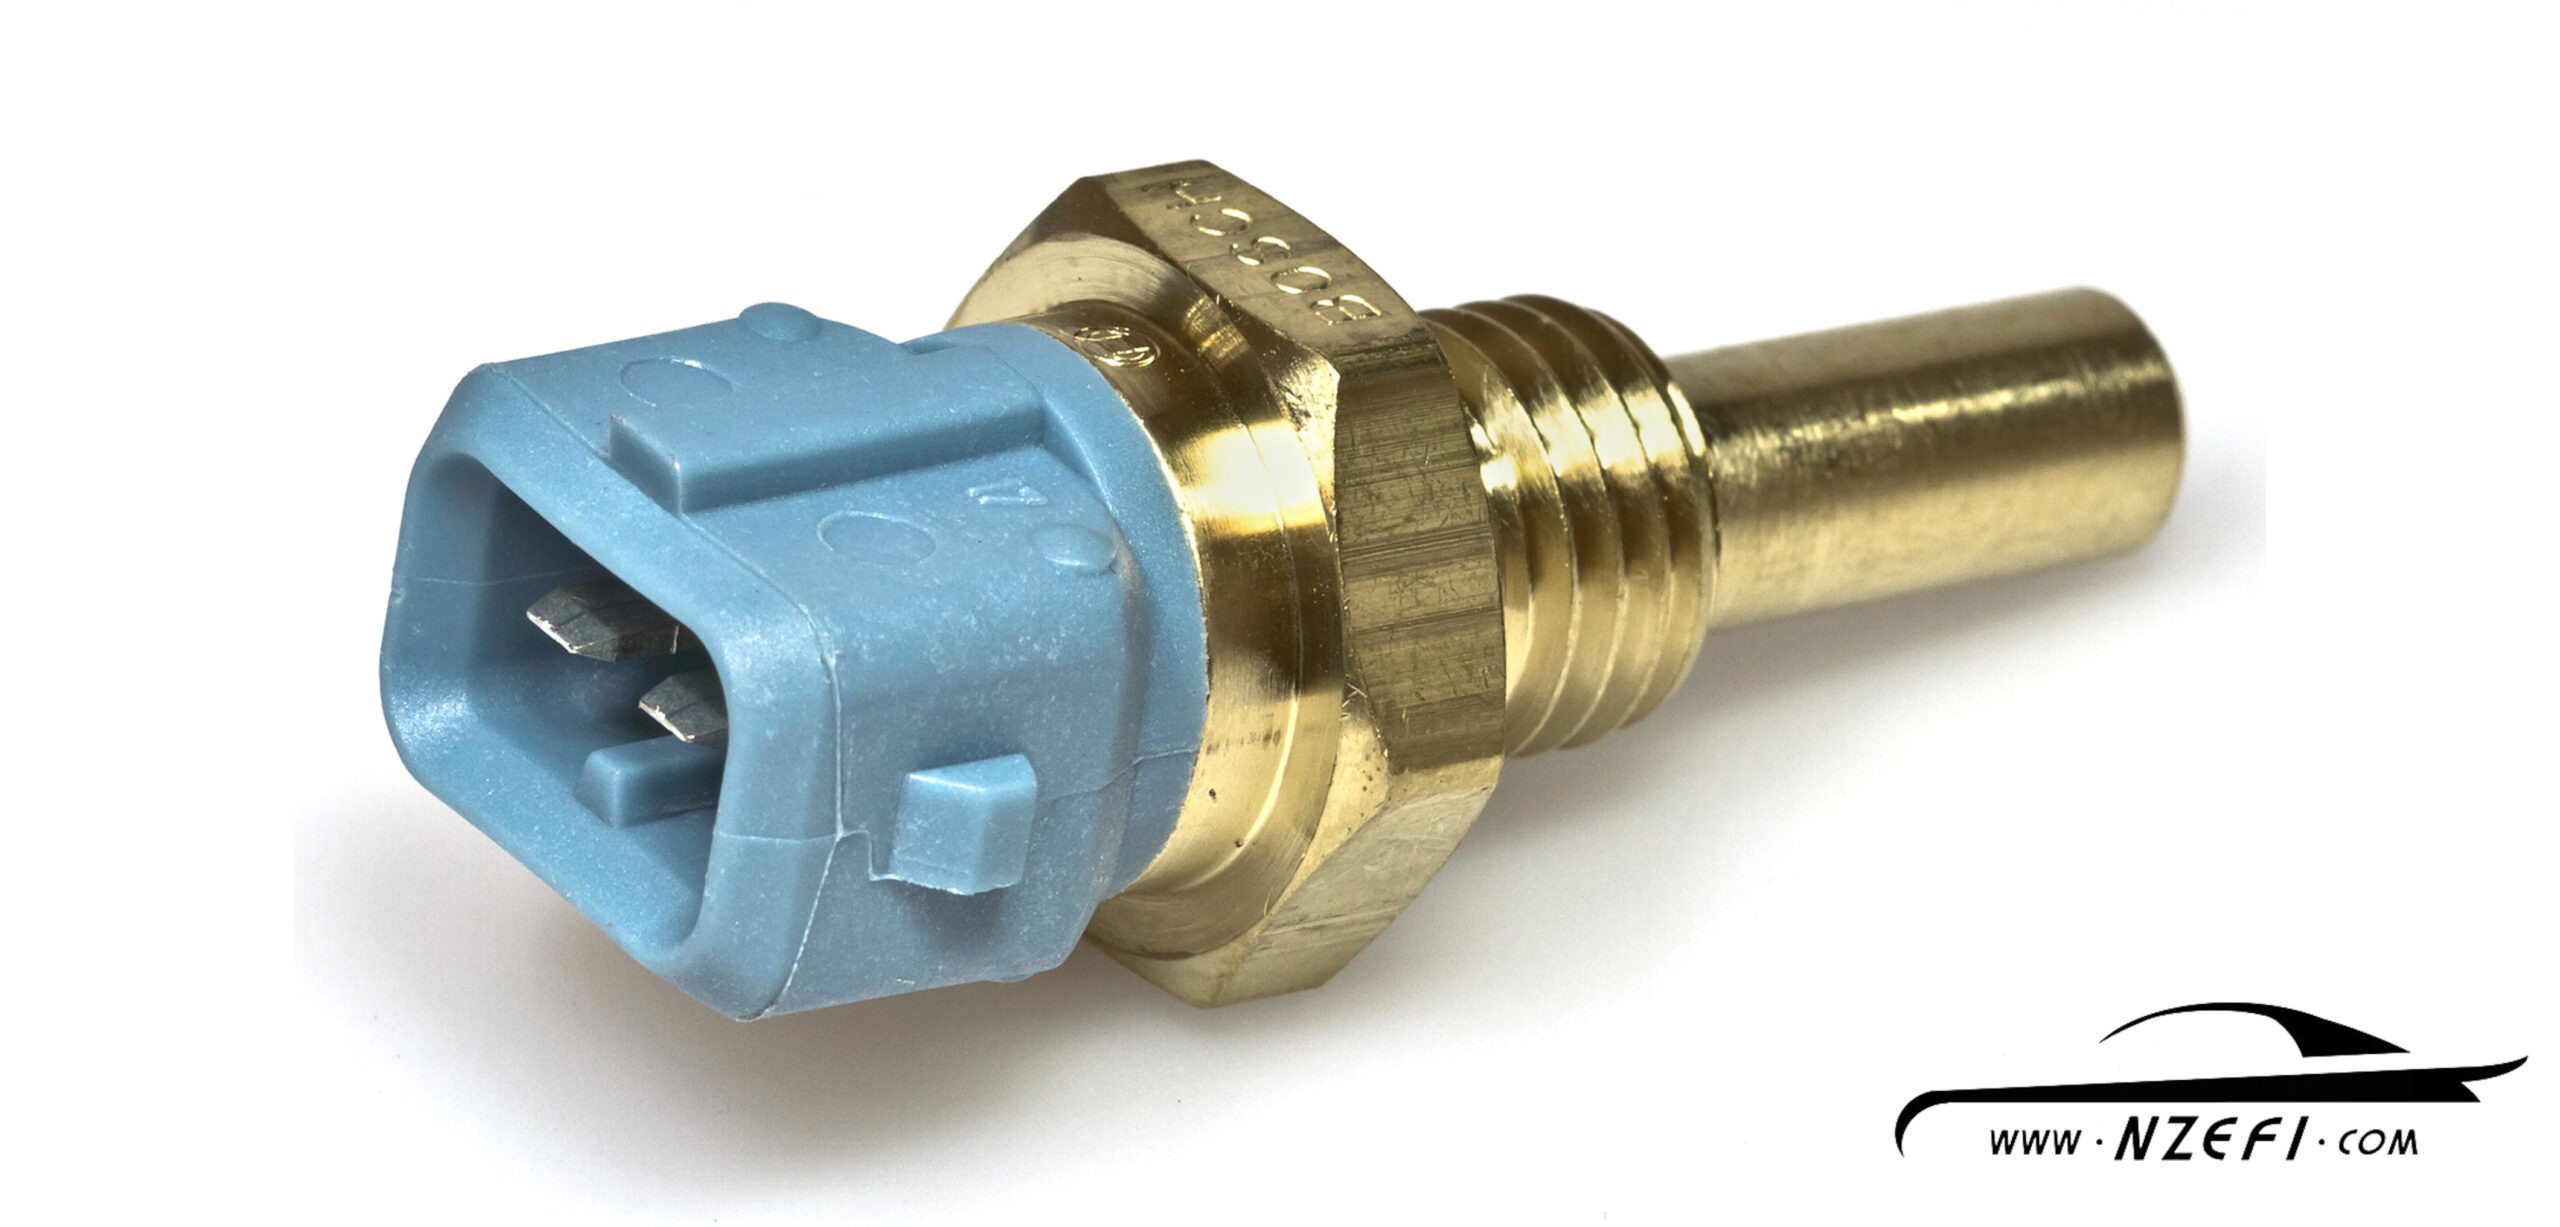 Bosch Engine Coolant Temperature Sensor Nzefi